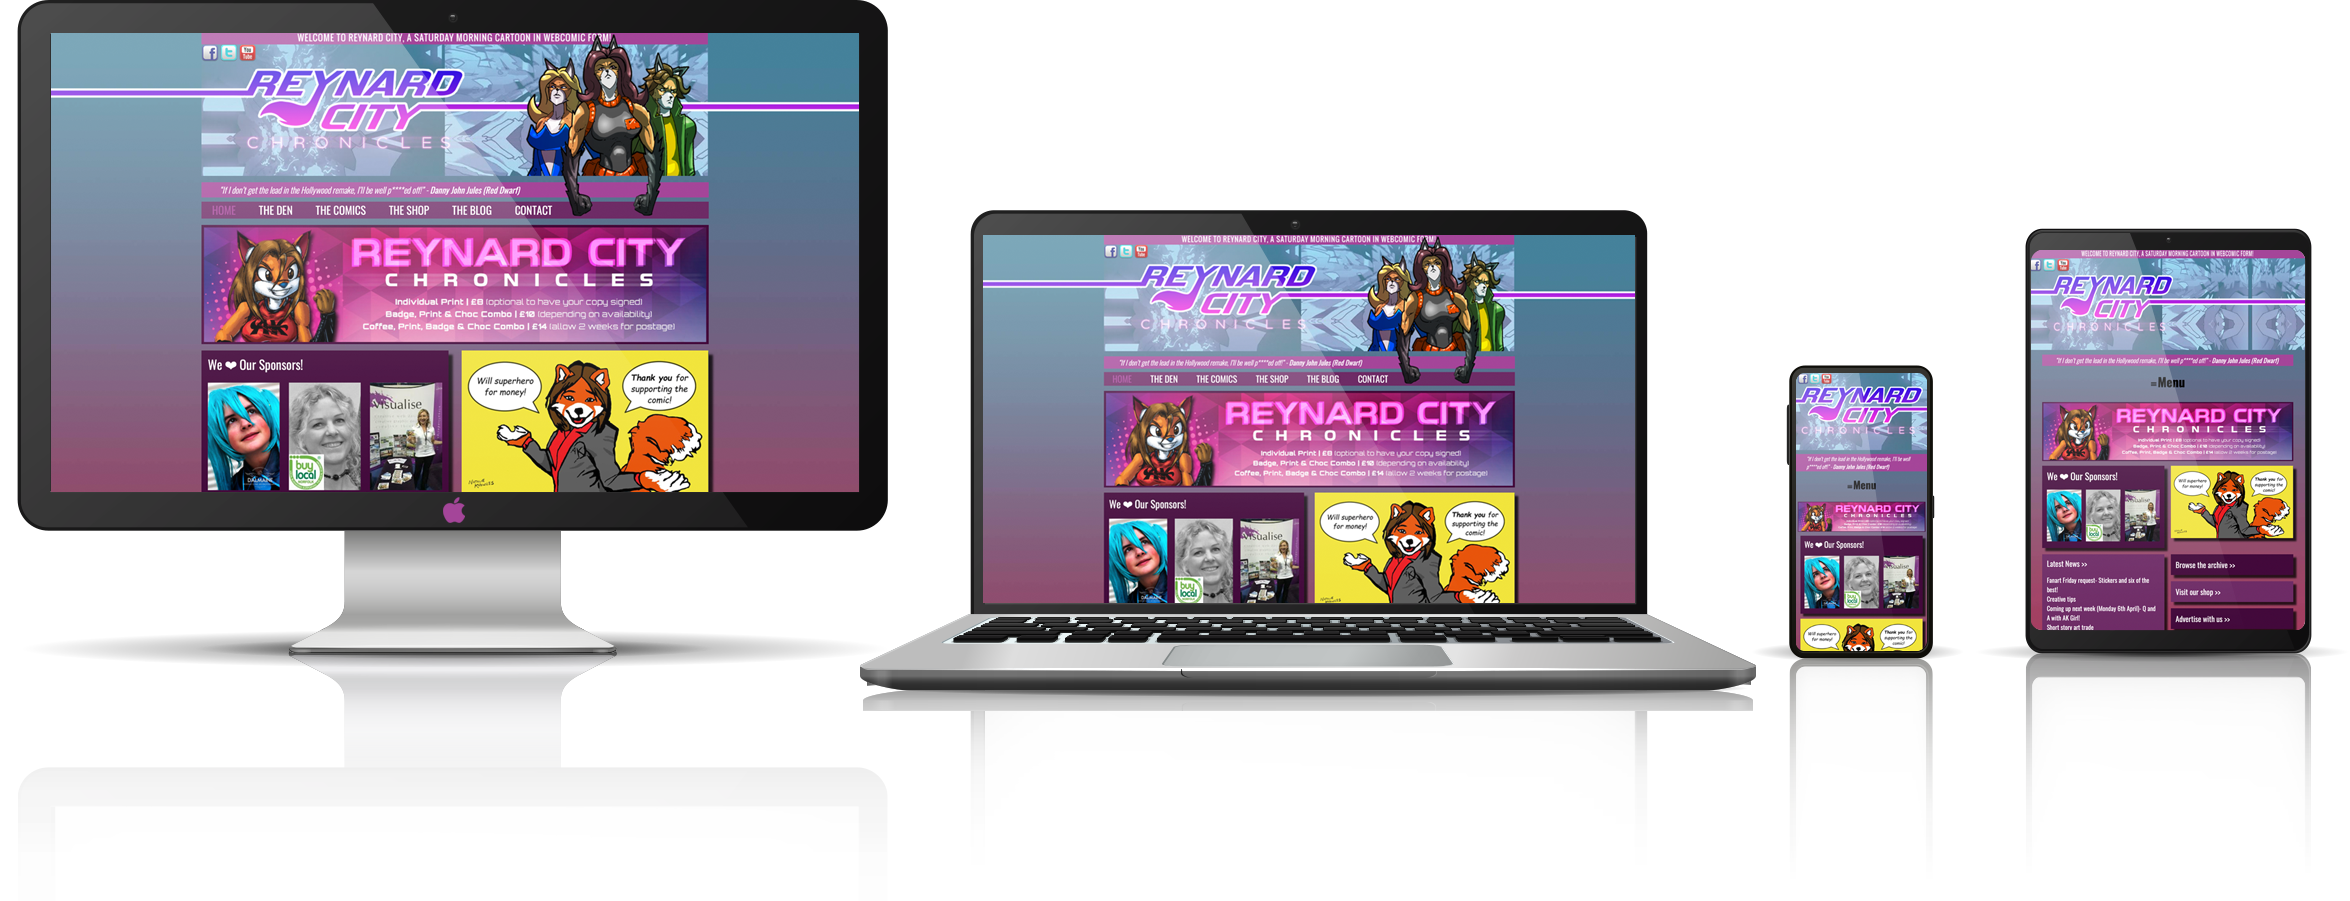 The Reynard City Chronicles fully responsive mock-up images showing desktop, laptop, tablet, and mobile phone devices.